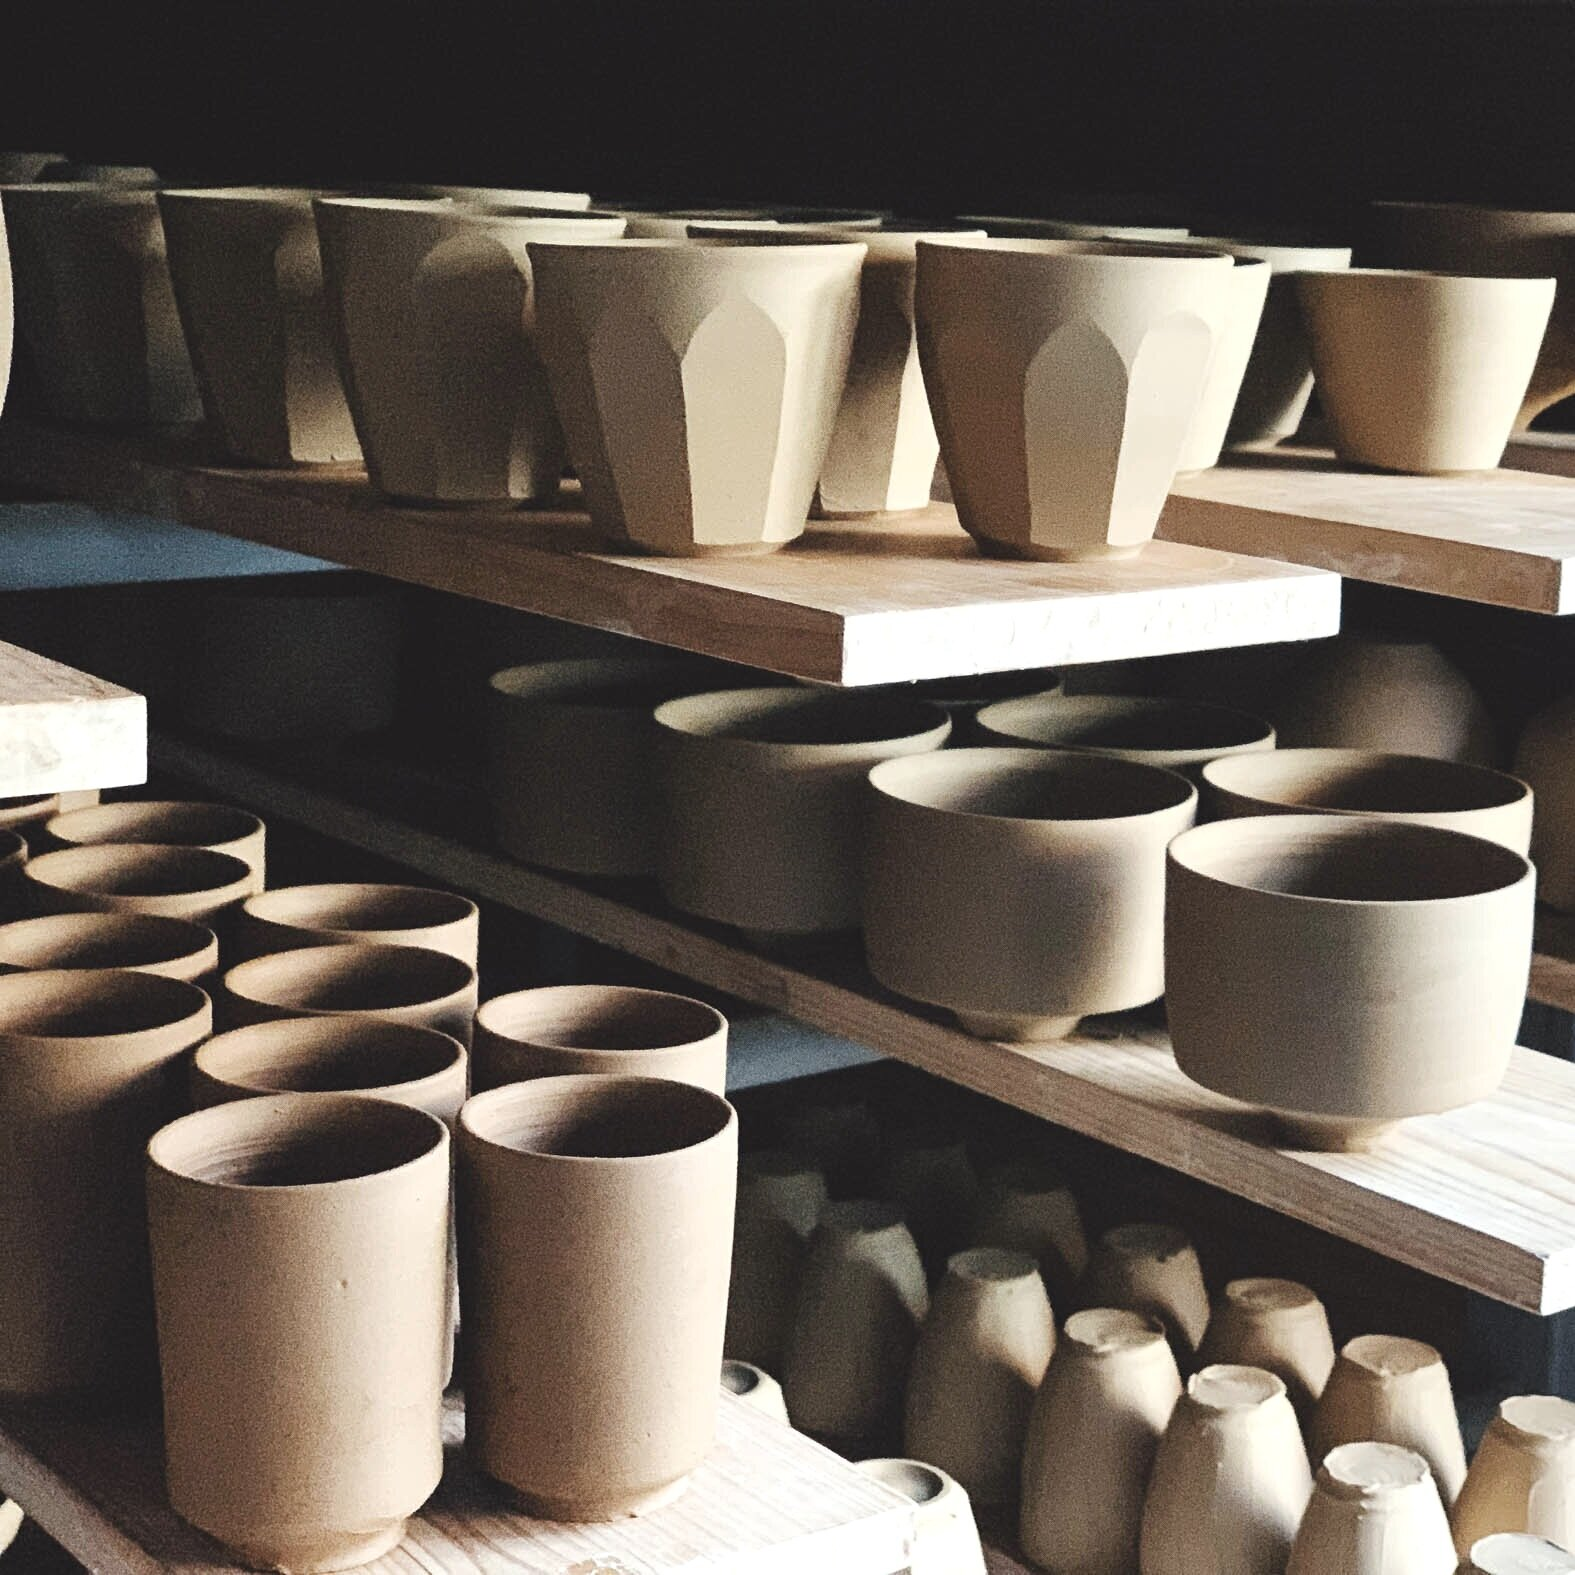 THE STORY OF FOOD + CERAMICS FROM SOUTHERN JAPAN - KARATSU, JAPANMAY 7 - 15, 2020SOLD OUT